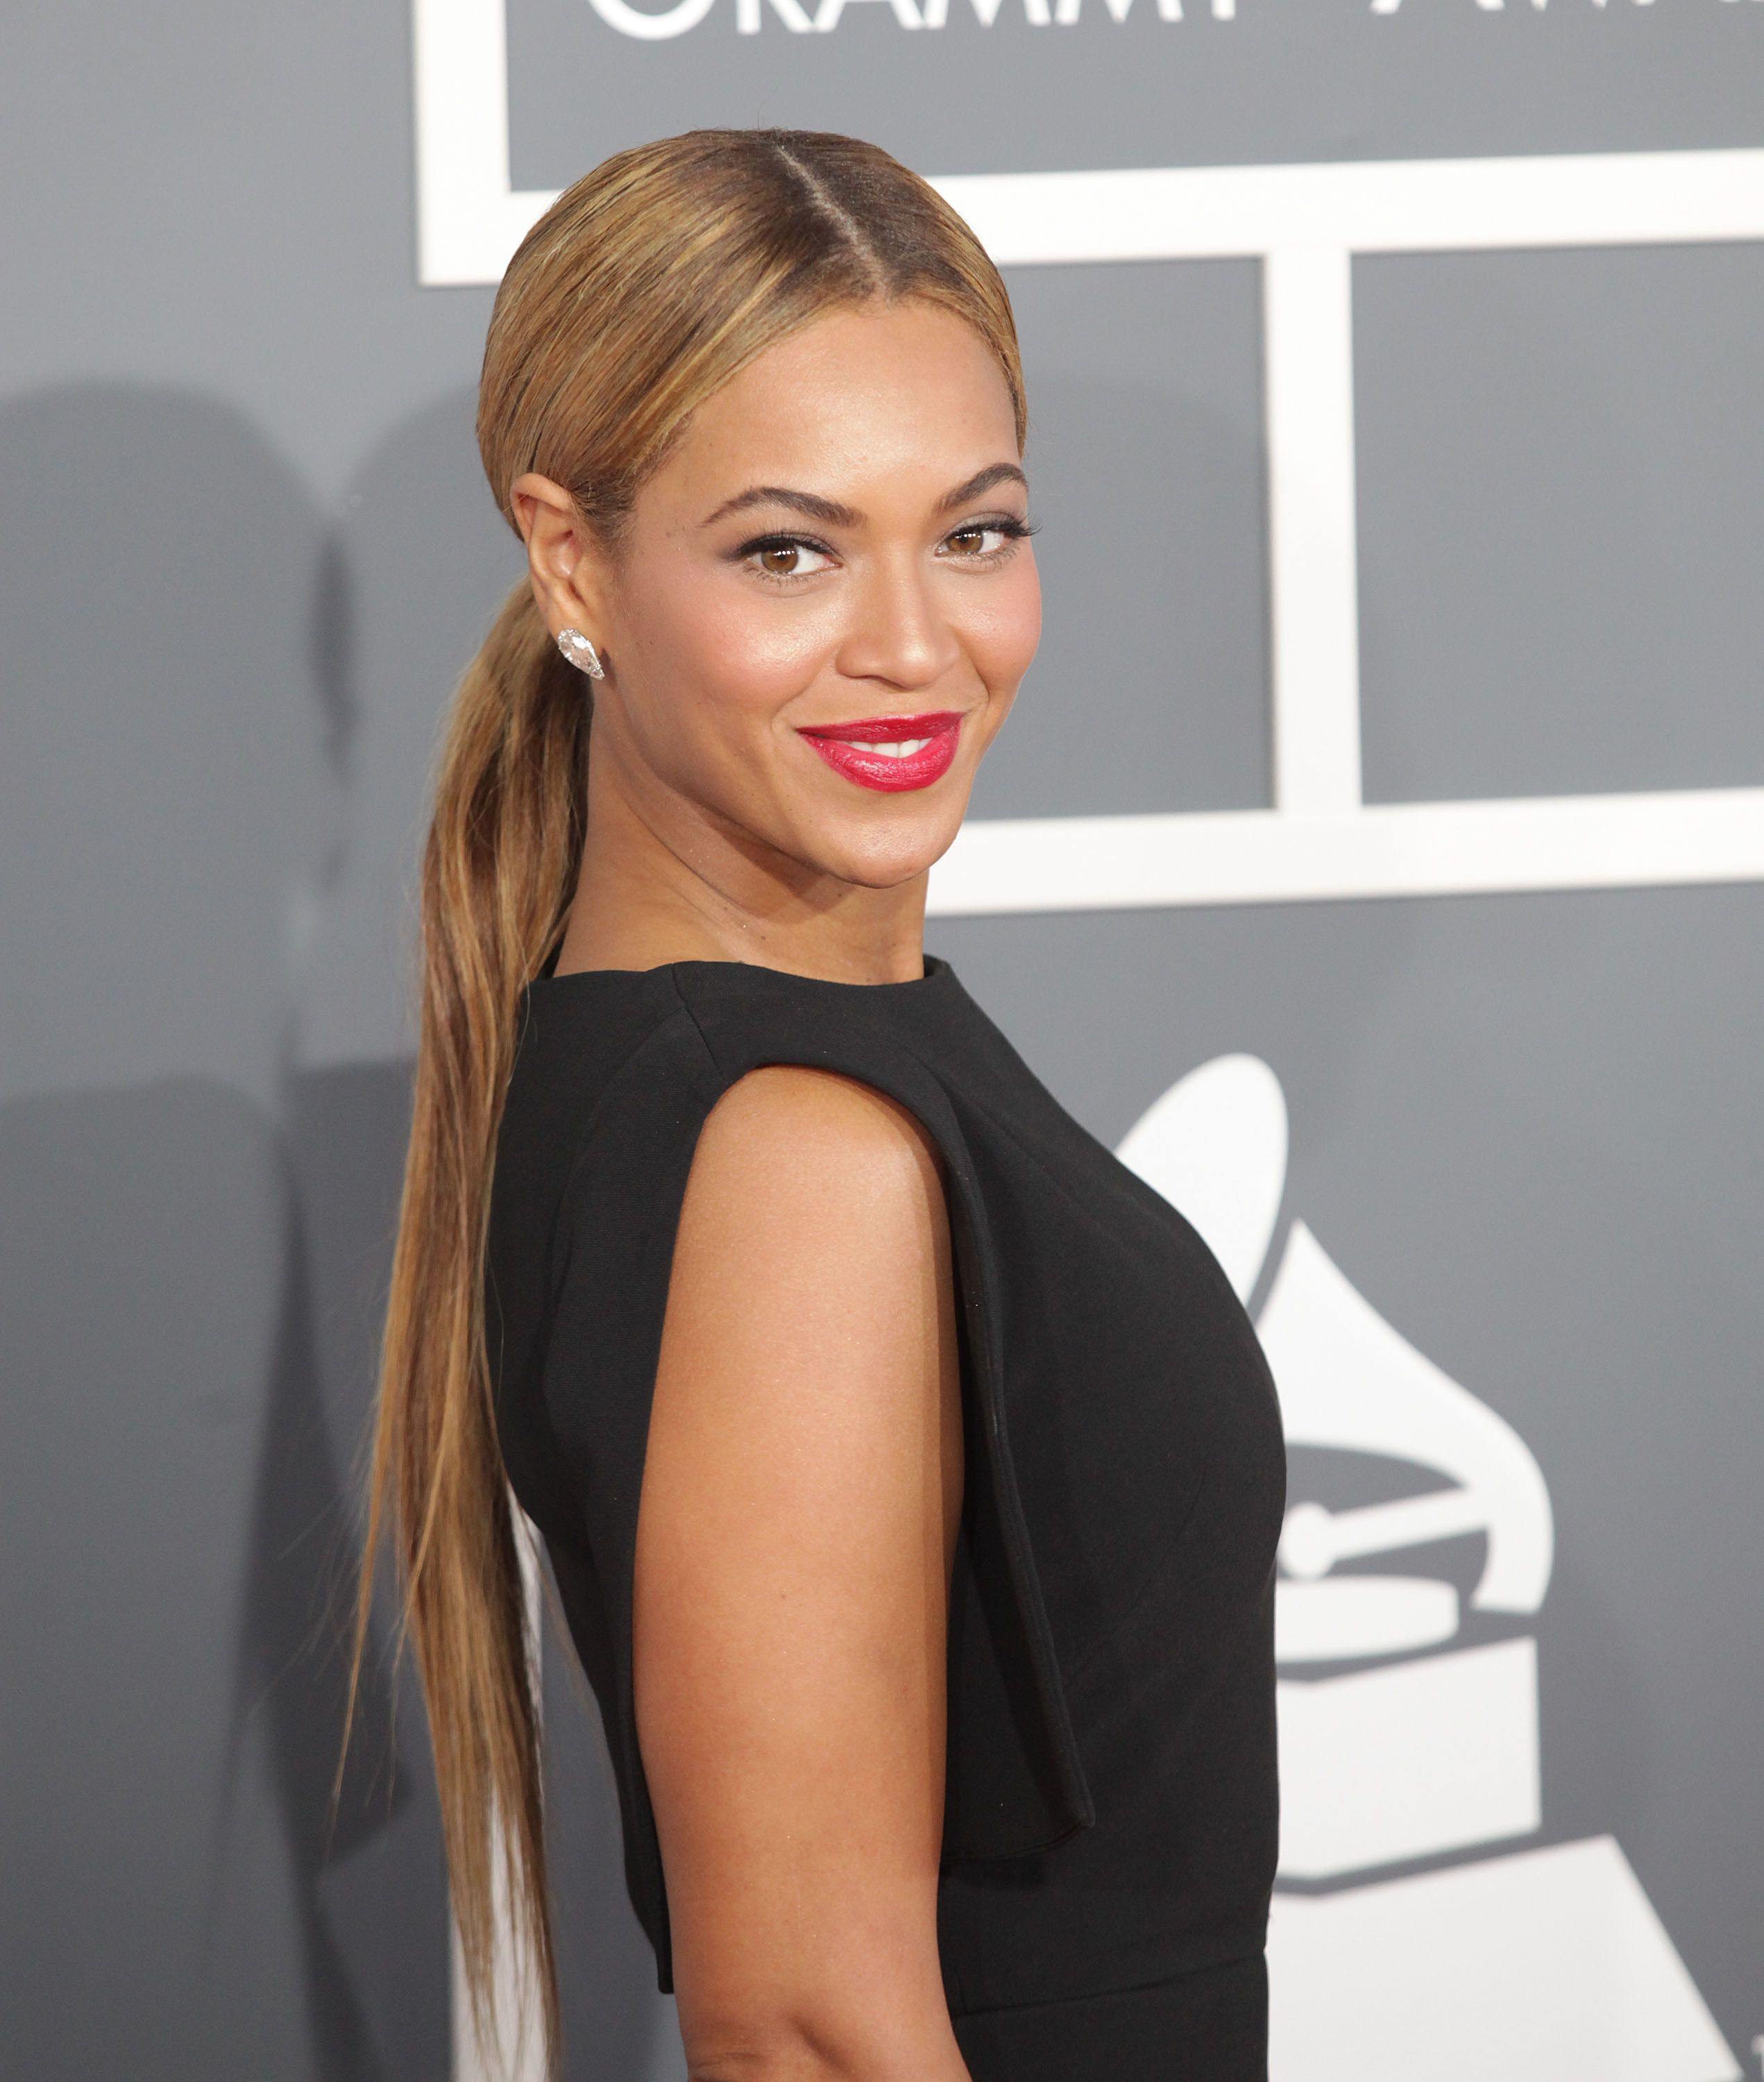 beyonce's low ponytail is a wet hair look to try thefuss.co